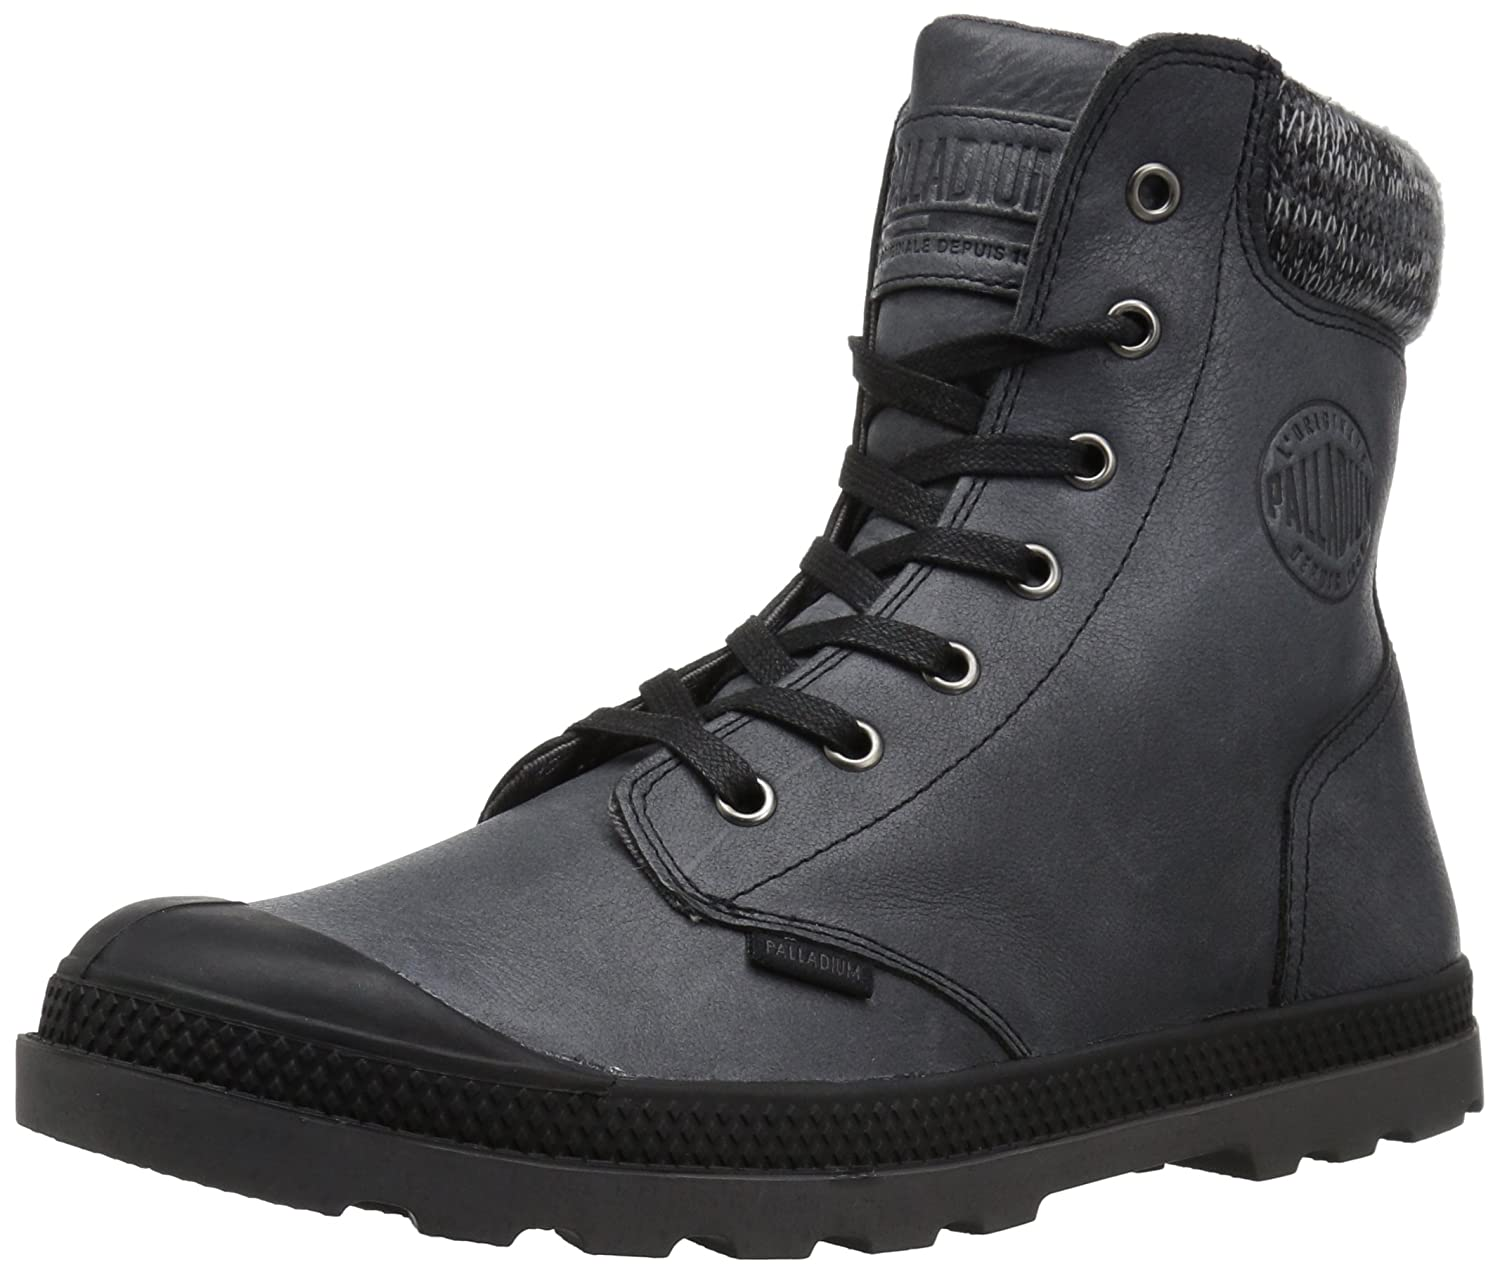 Palladium Women's Pampa Hi Knit Lp Chukka Boot B01N28NA8O 8.5 B(M) US|Black/Forged Iron